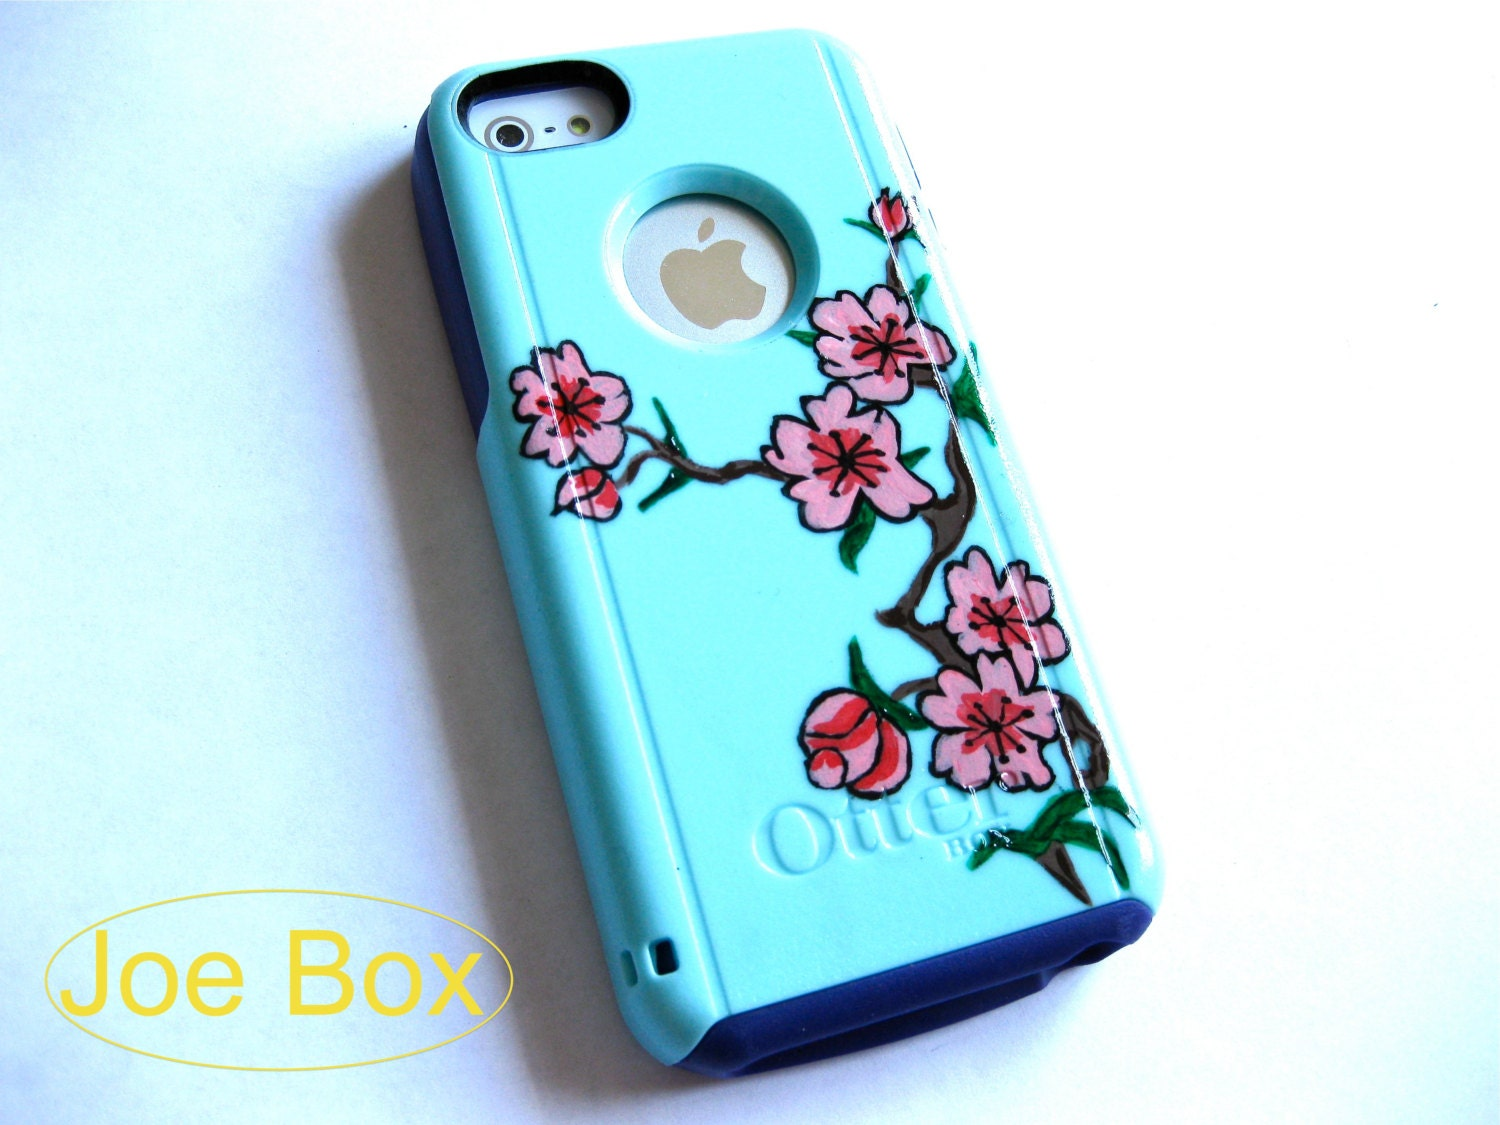 iphone 5c otterbox cases otterbox iphone 5c cover iphone 5c otterbox 14684